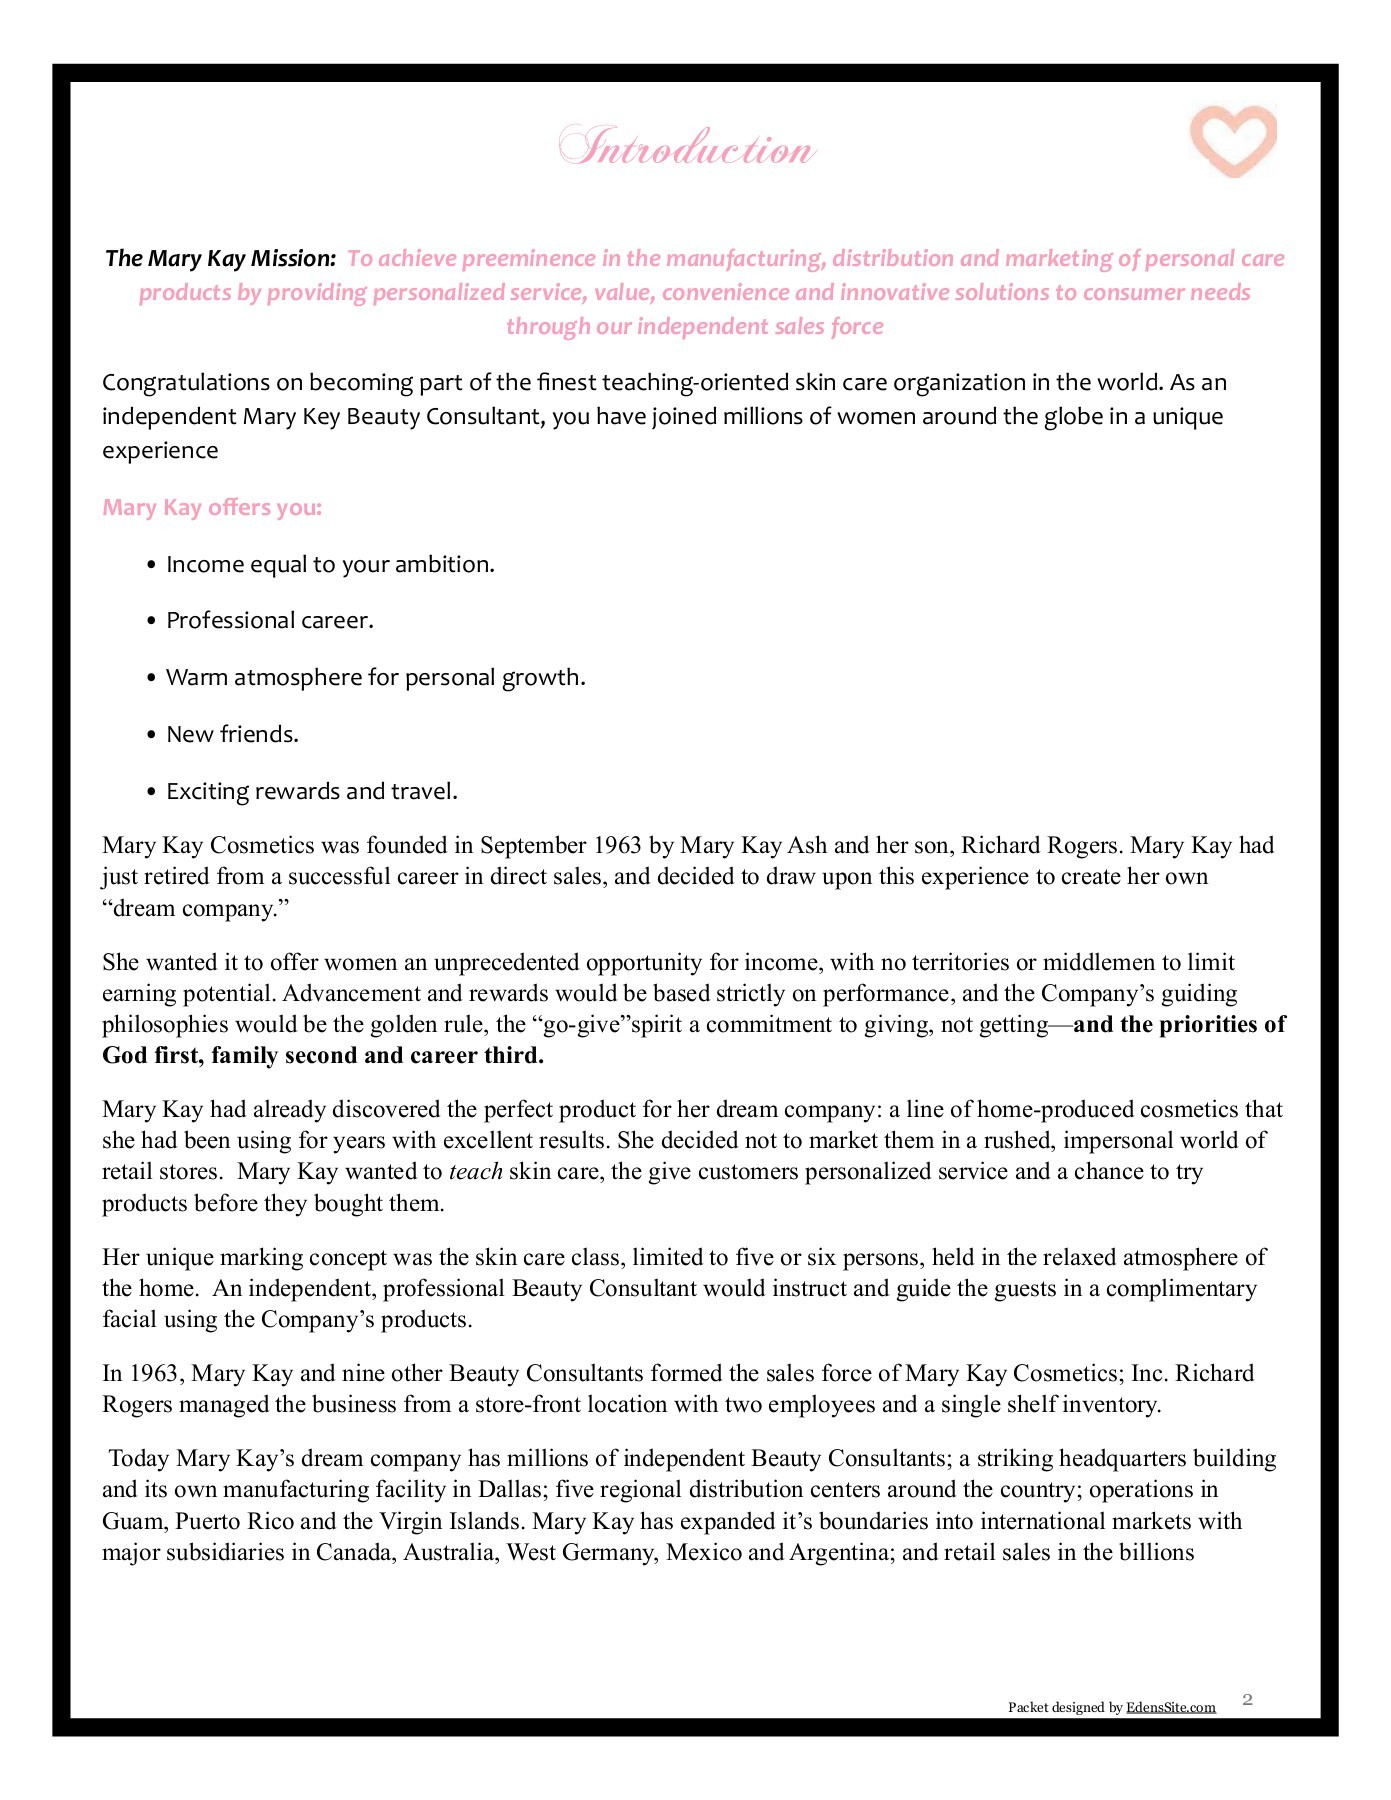 Mary Kay Product Knowledge Worksheet